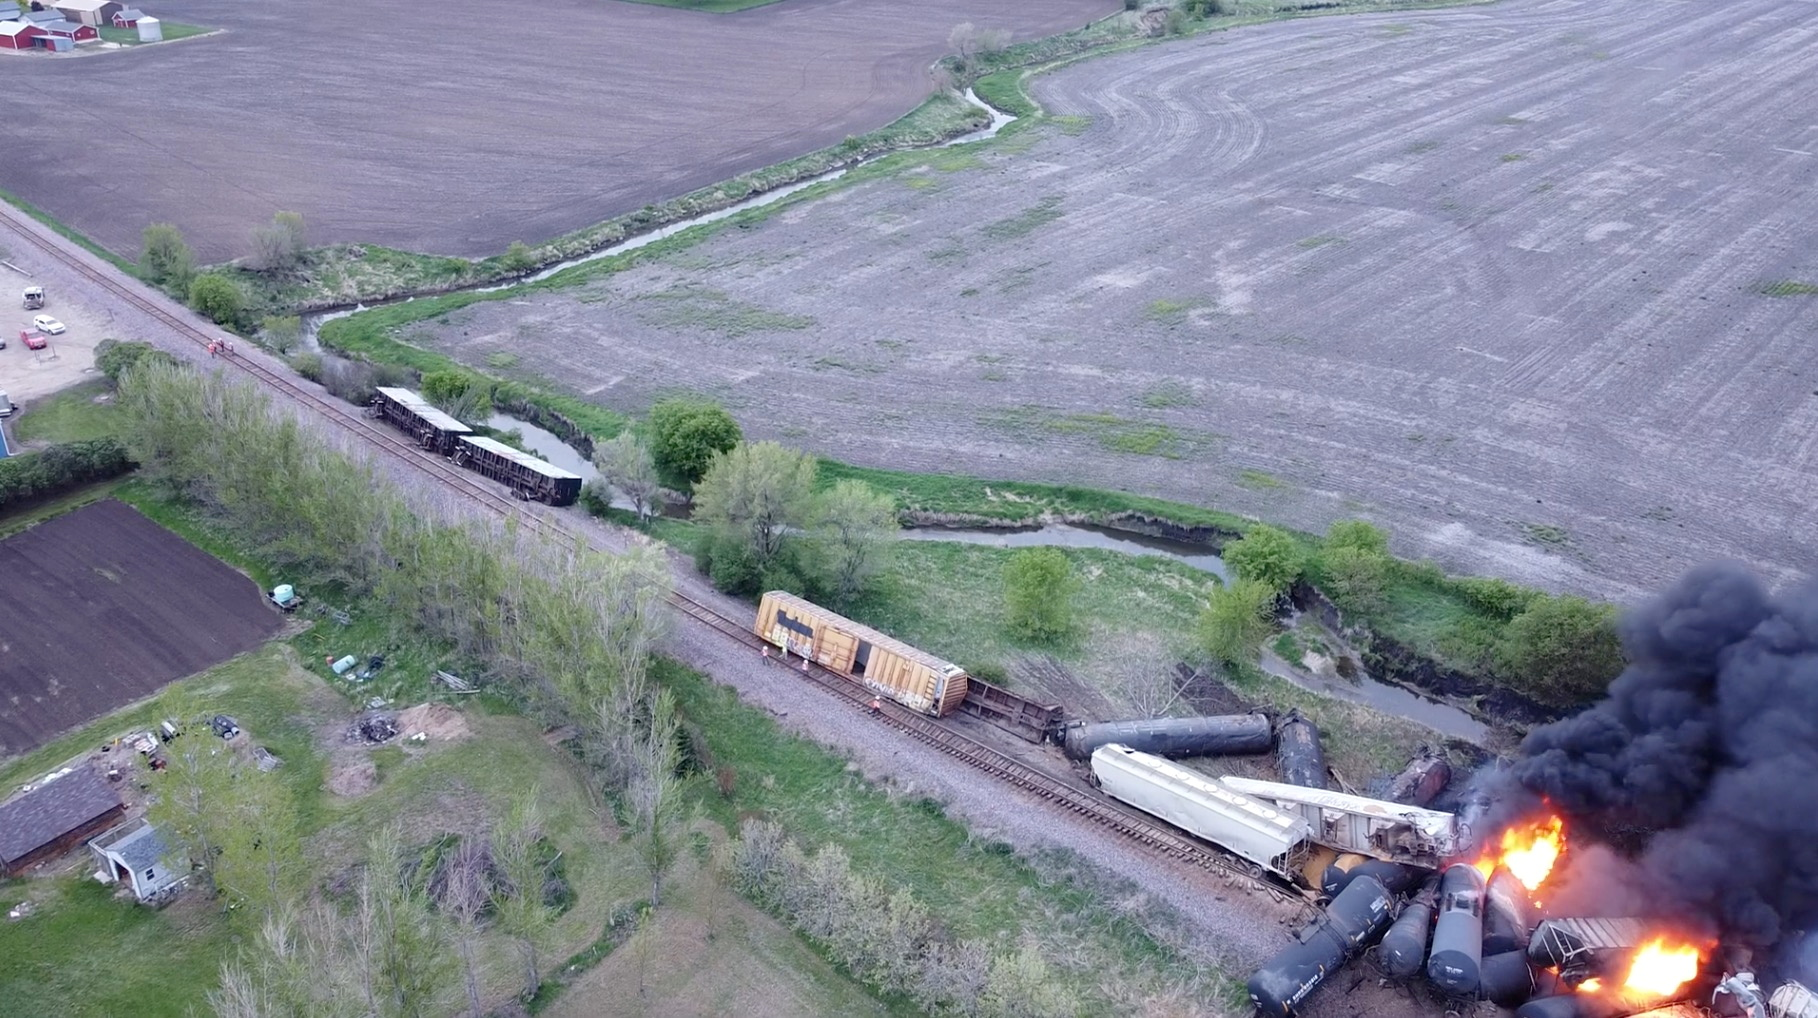 Fire is seen on a Union Pacific train carrying hazardous material that has derailed in Sibley, Iowa, U.S., in this still frame obtained from social media drone video dated May 16, 2021. NATHAN MINTEN/via REUTERS